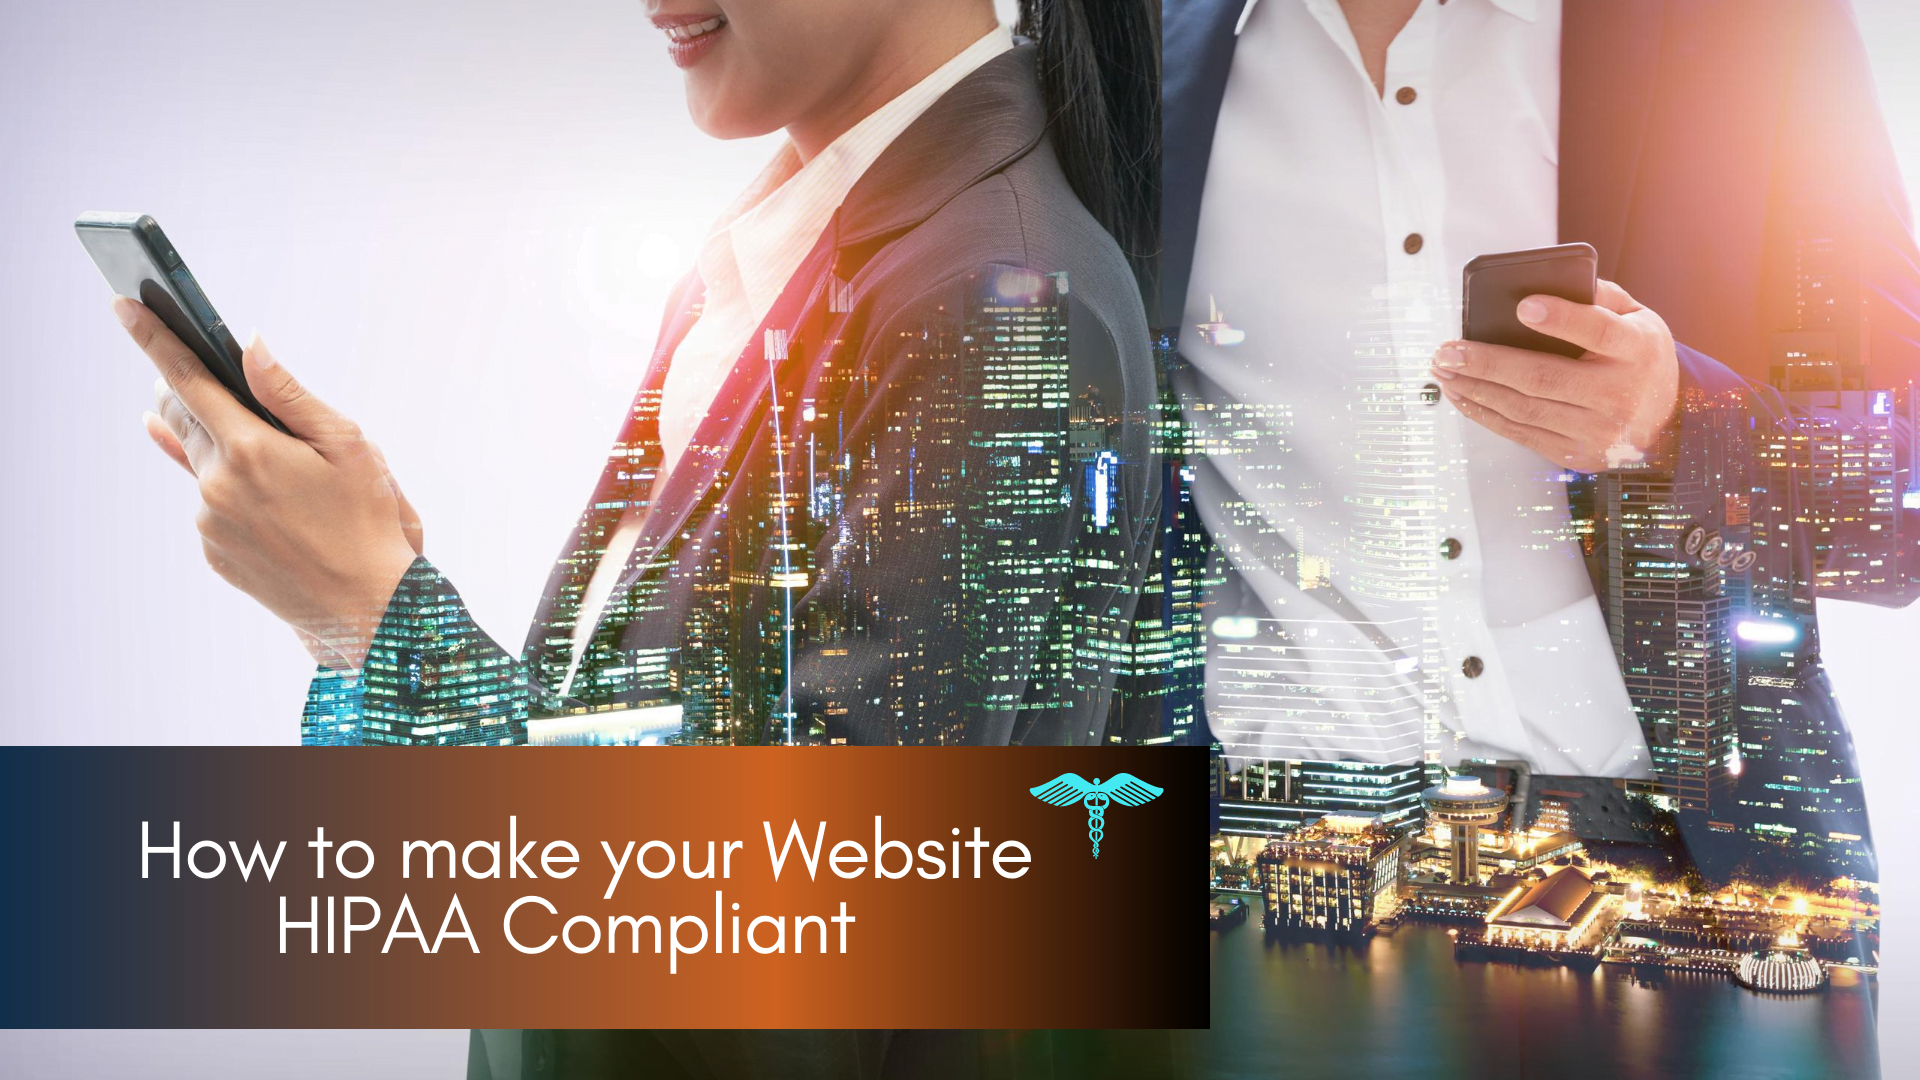 How to Make Your Website HIPAA Compliant